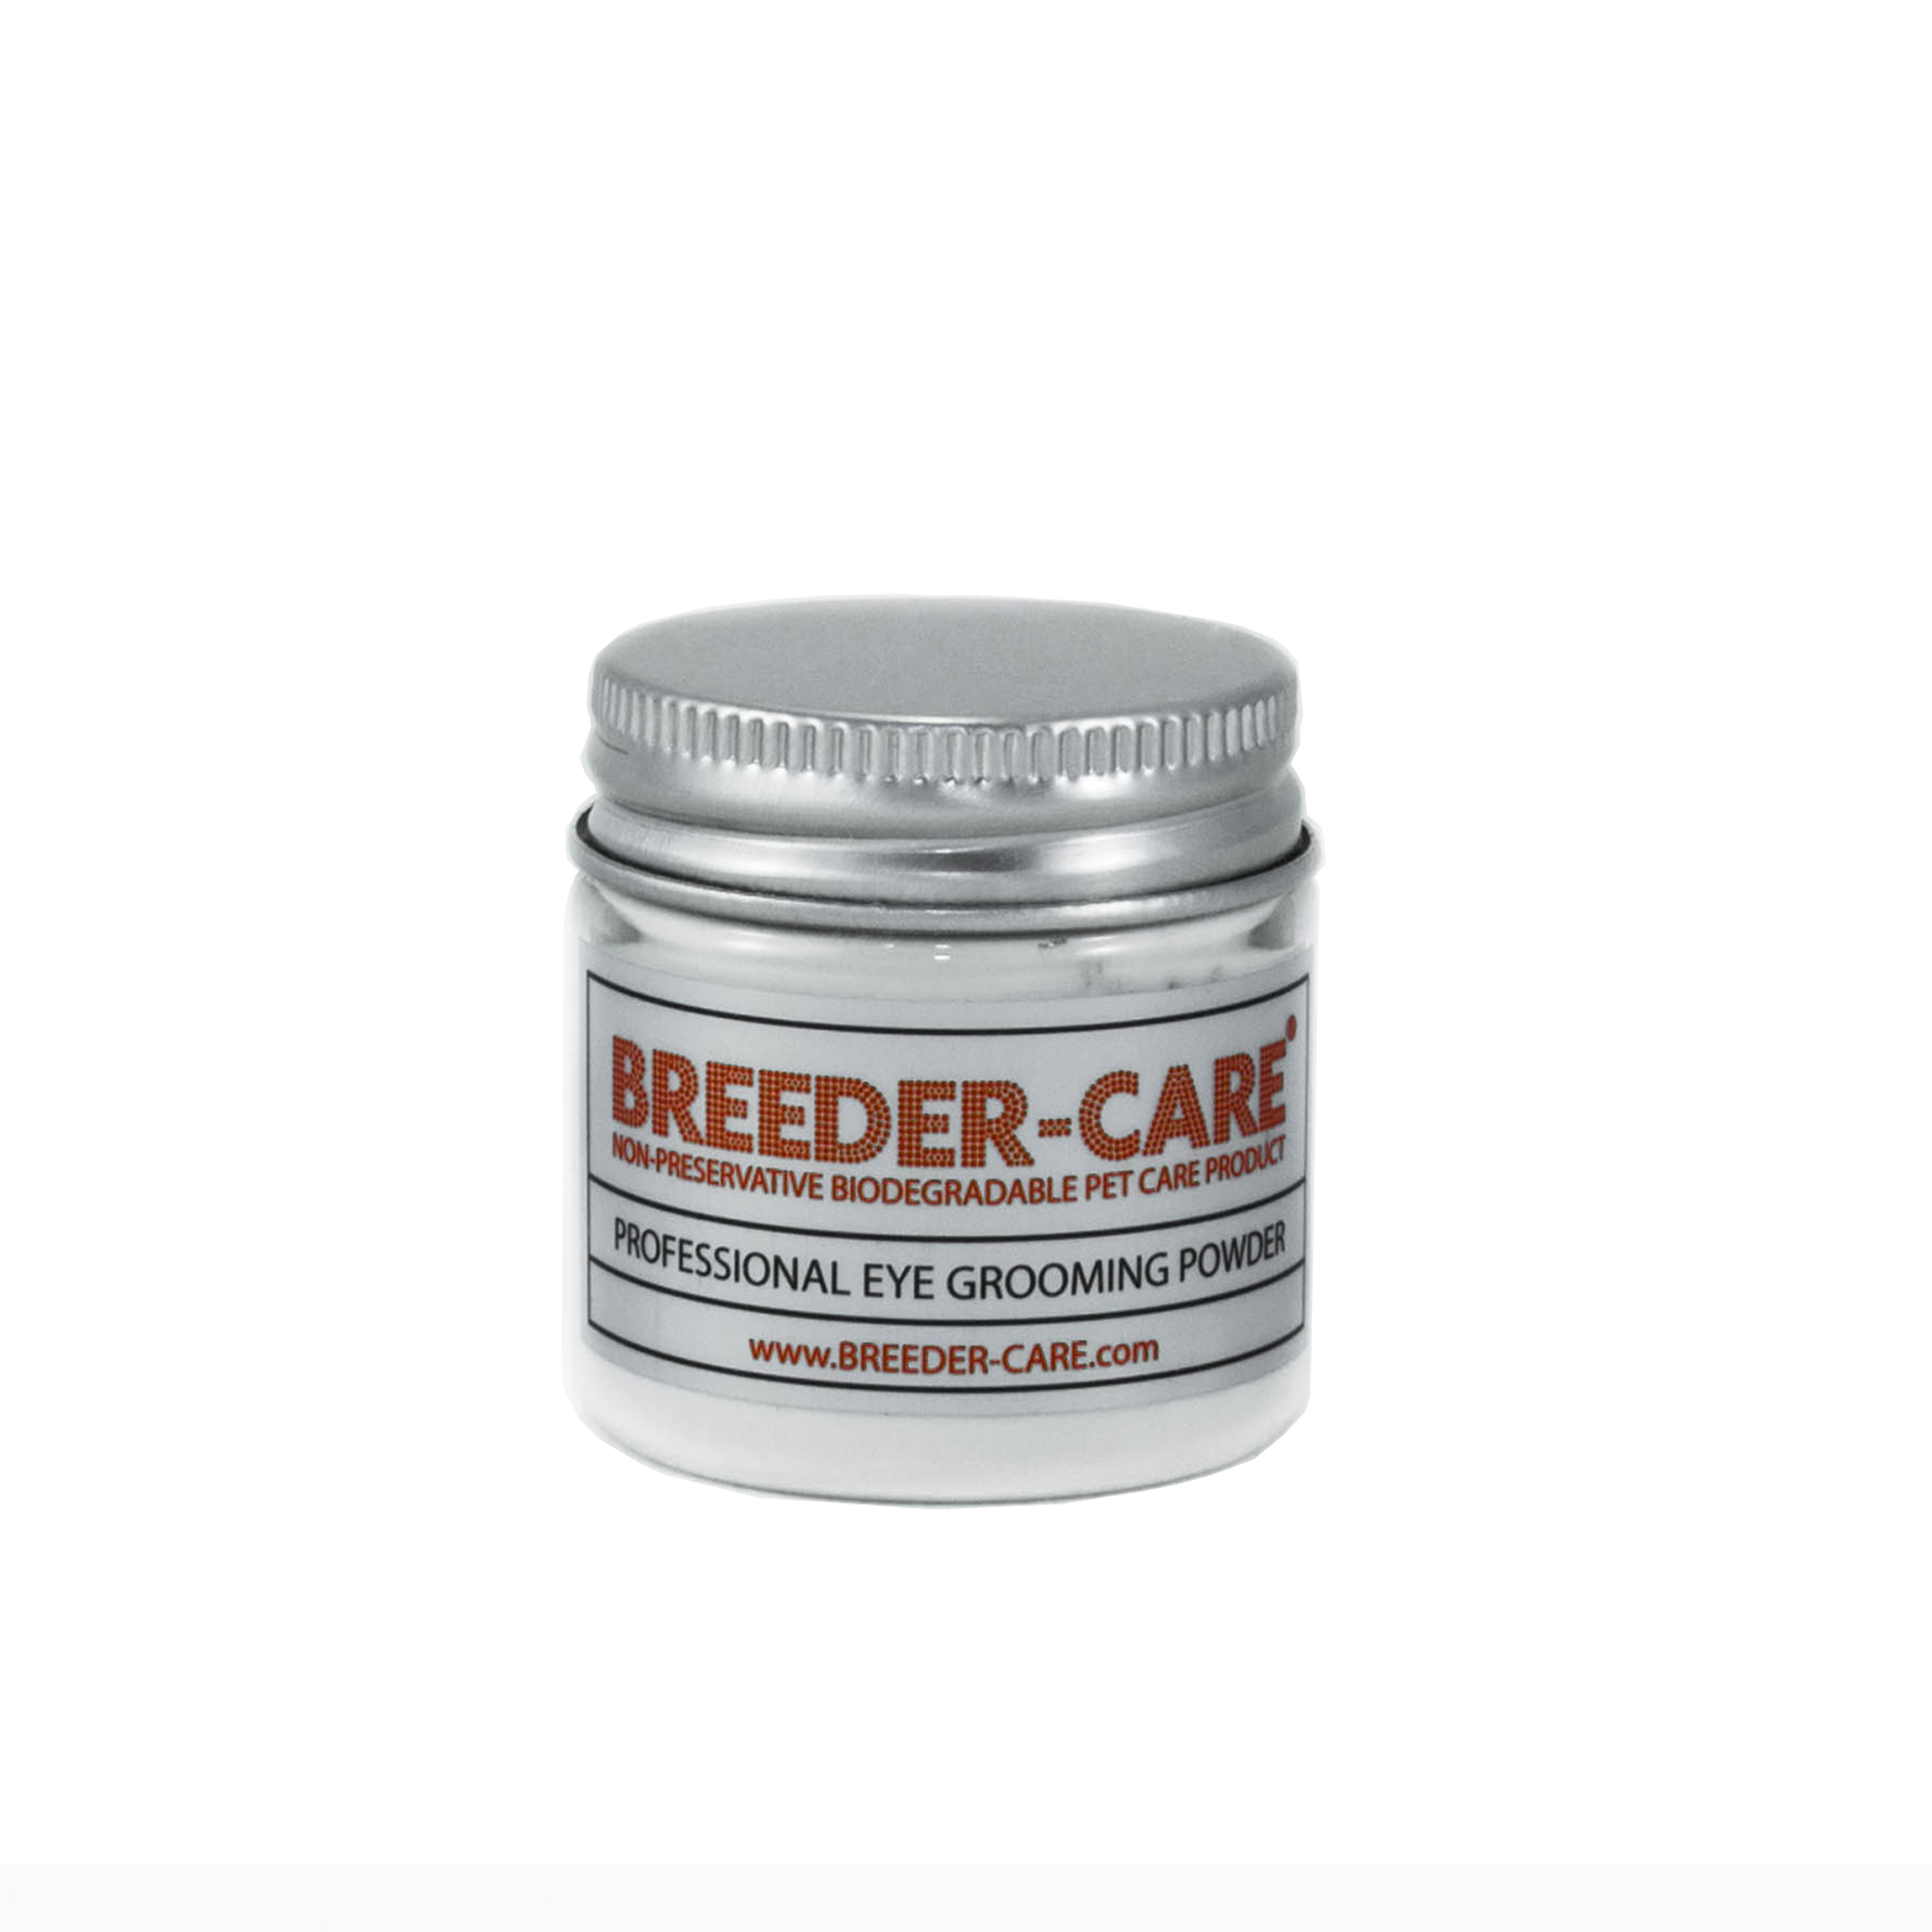 GROOMING POWDER (1/2 OZ)